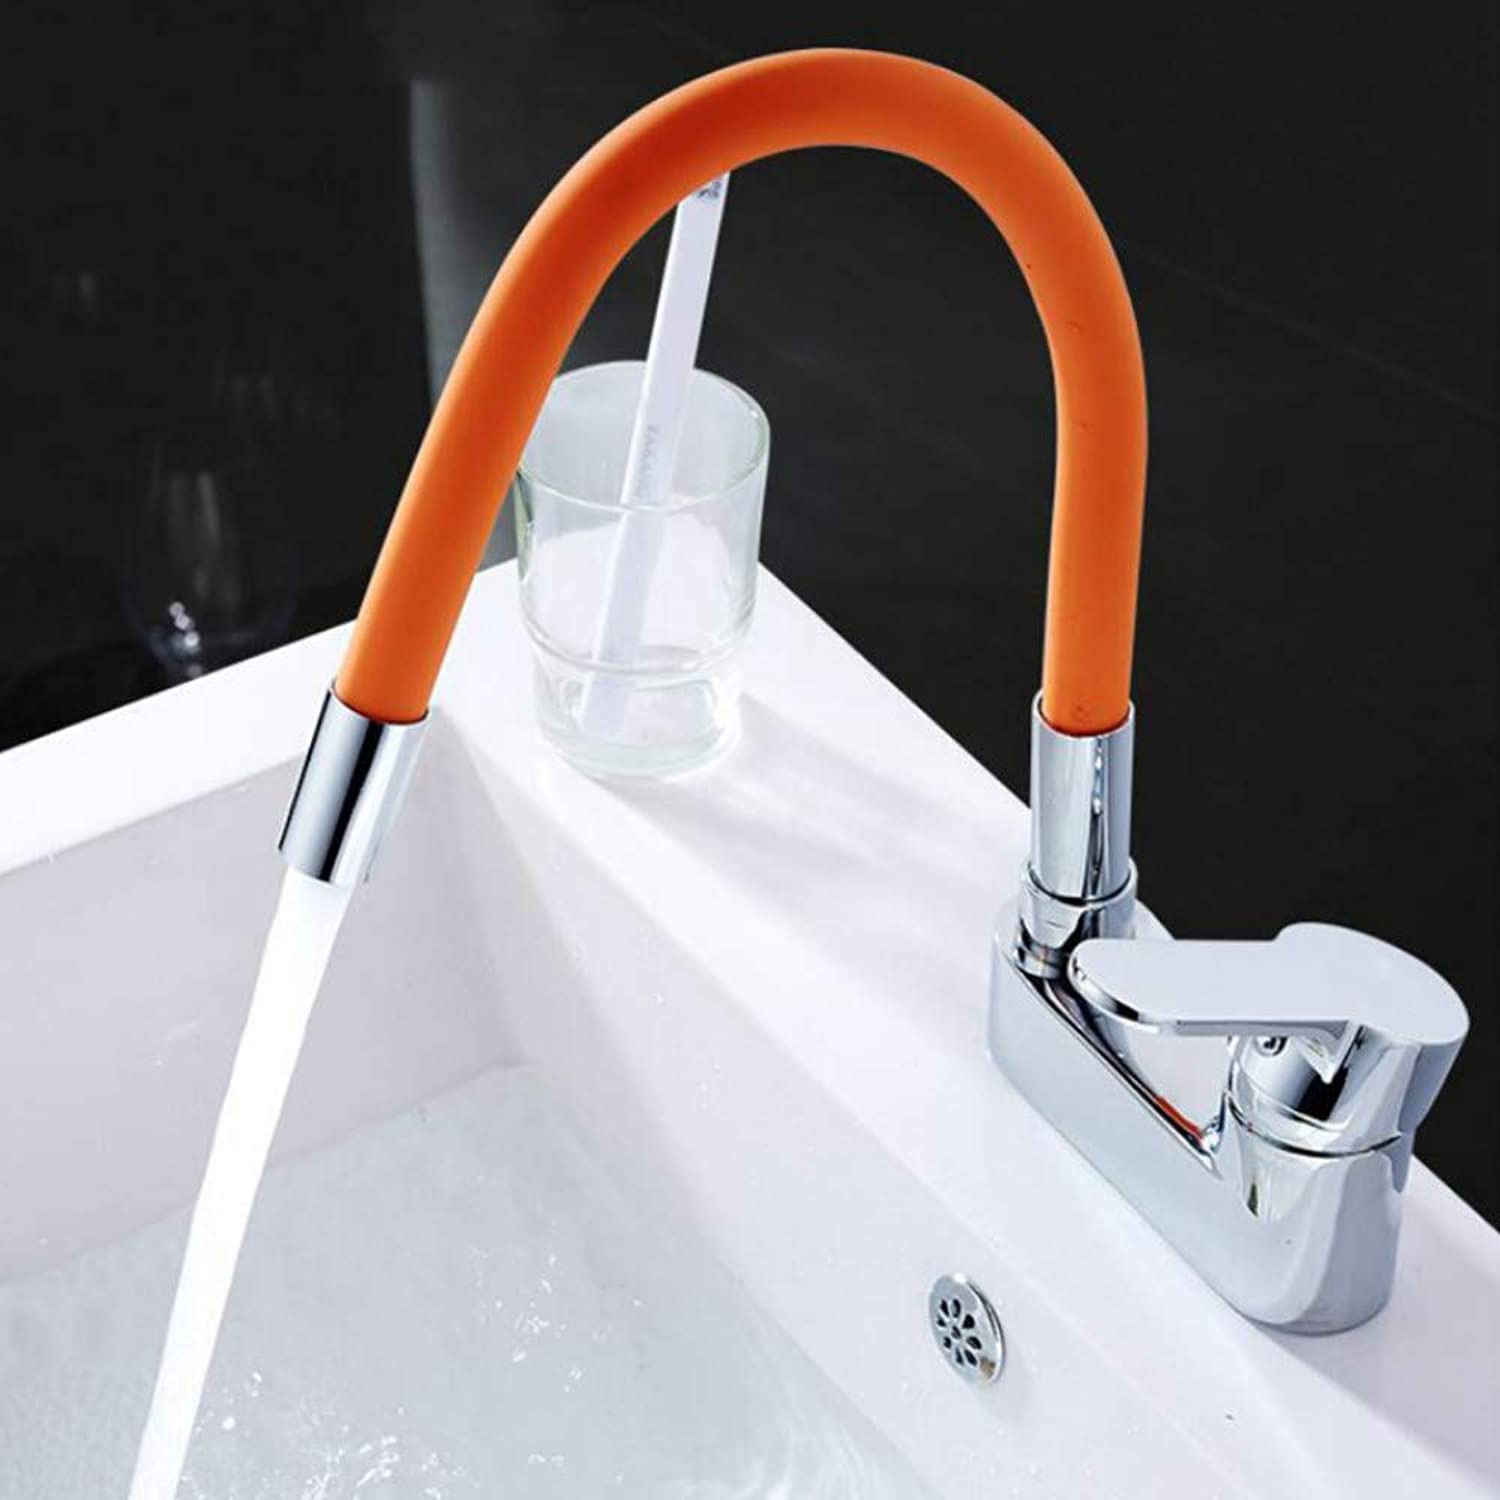 Ayhuir Silica Gel Nose Any Direction redating Bathroom Faucet Cold and Hot Water Mixer Single Handle Double Holes Tap